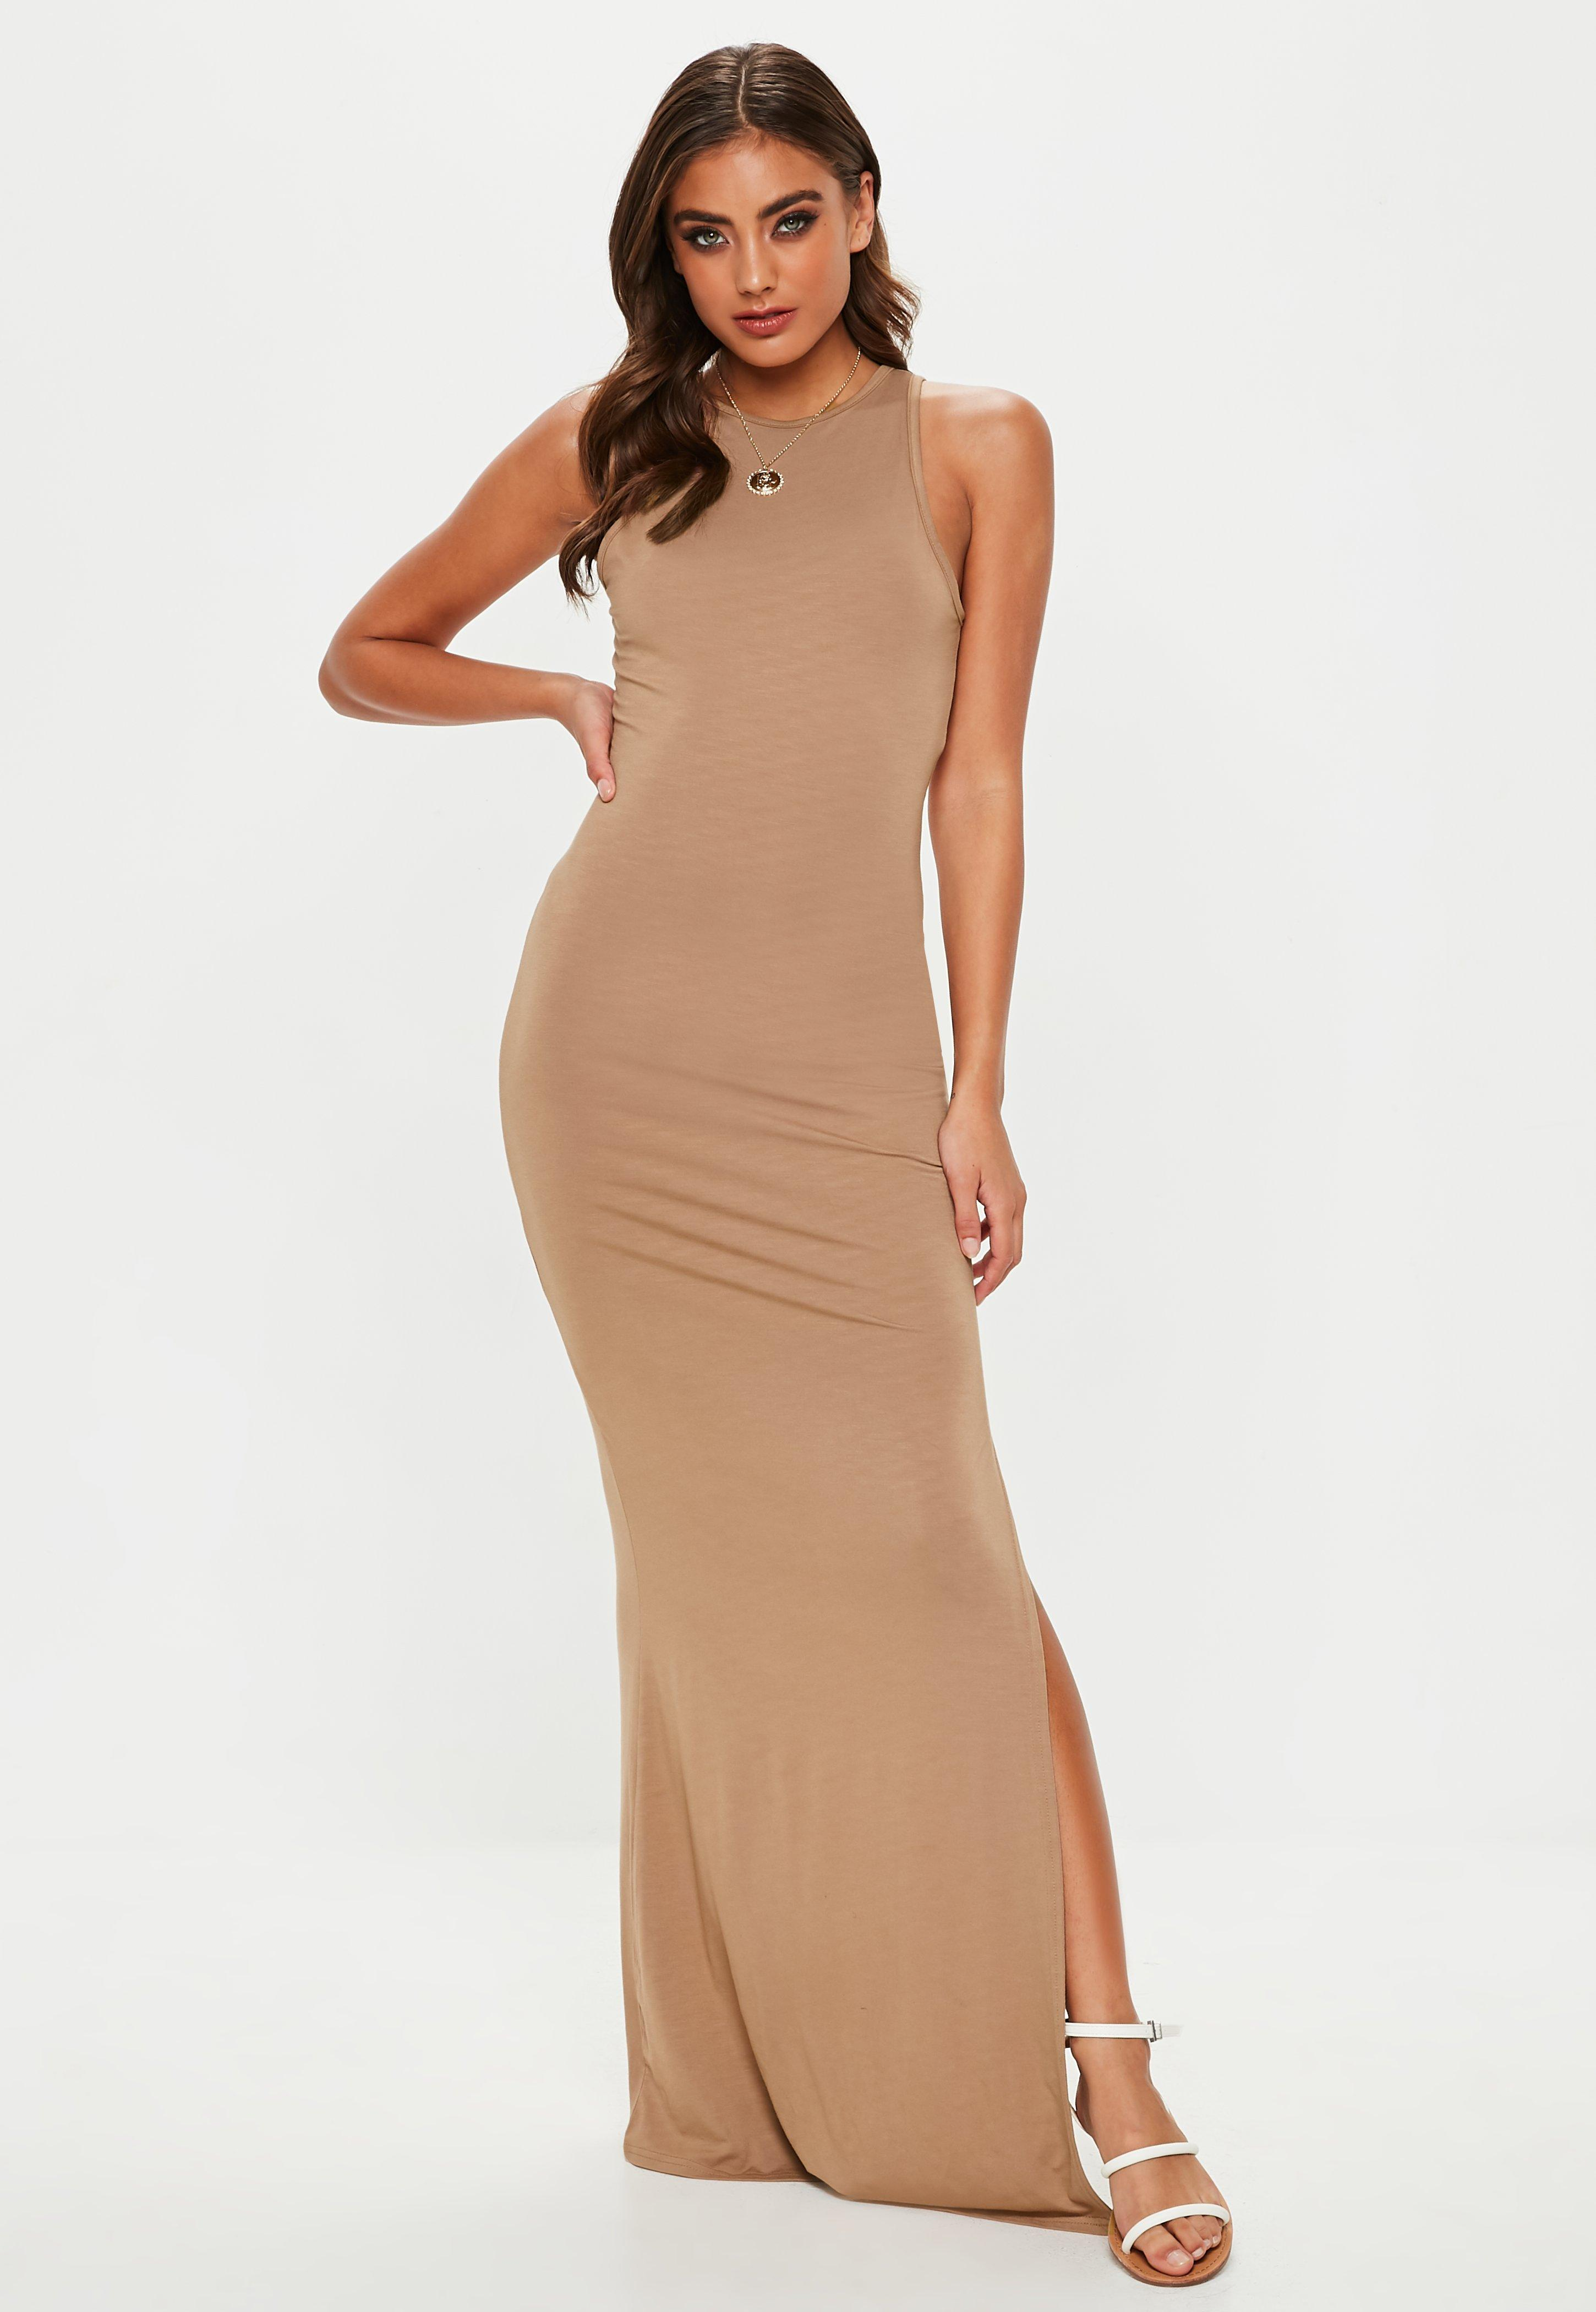 Dresses | Women\'s Dresses Online from $12 - Missguided